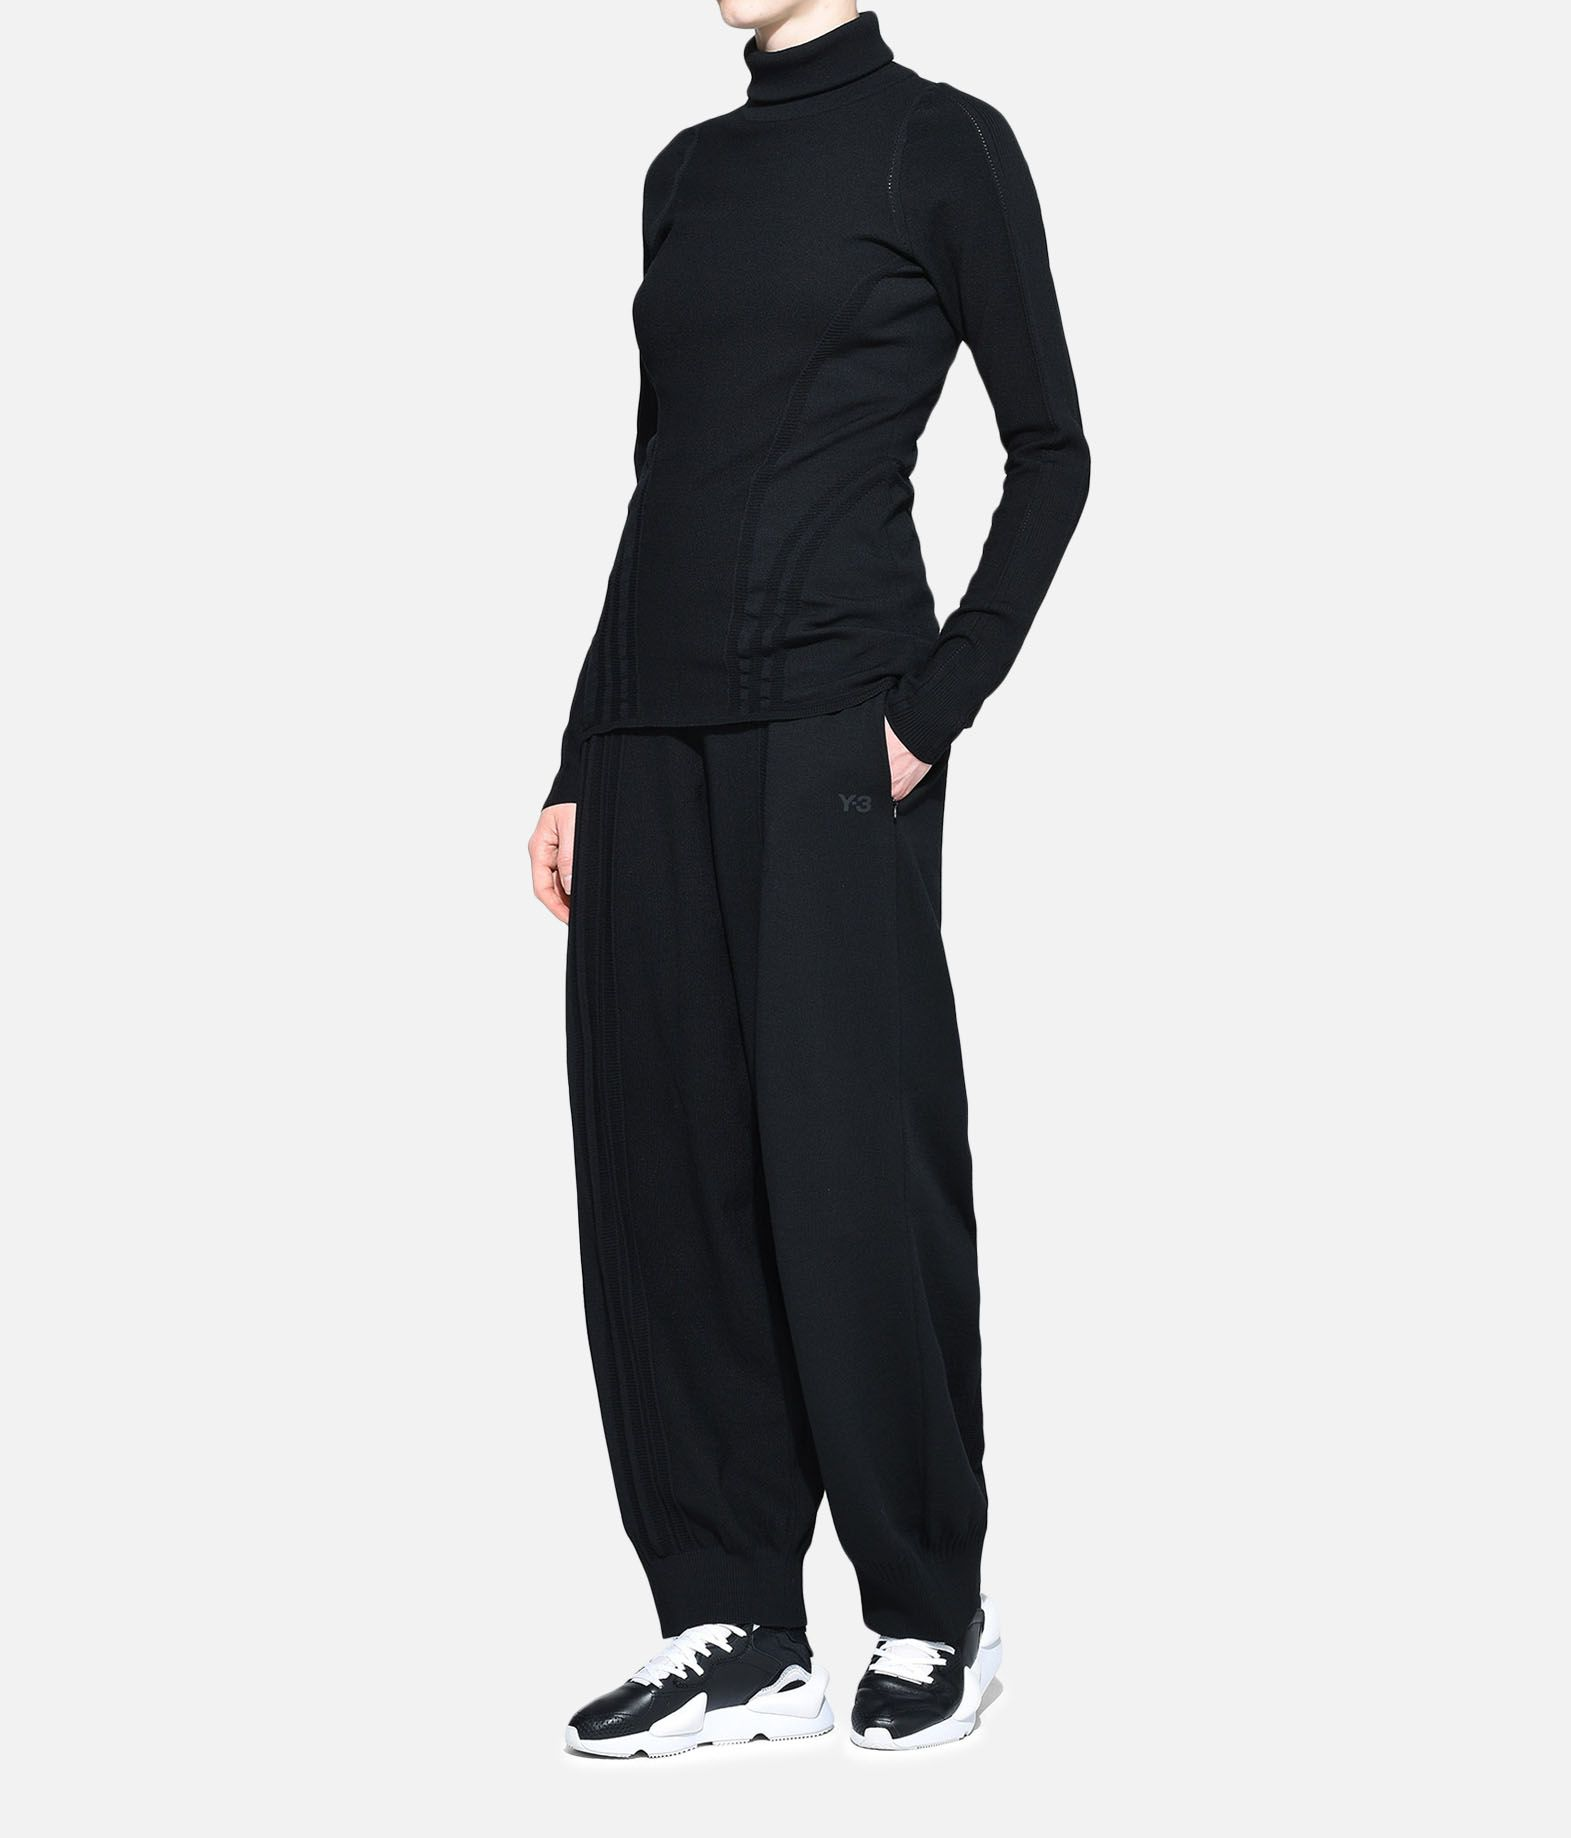 Y-3 Y-3 Tech Wool Pants Casual pants Woman a